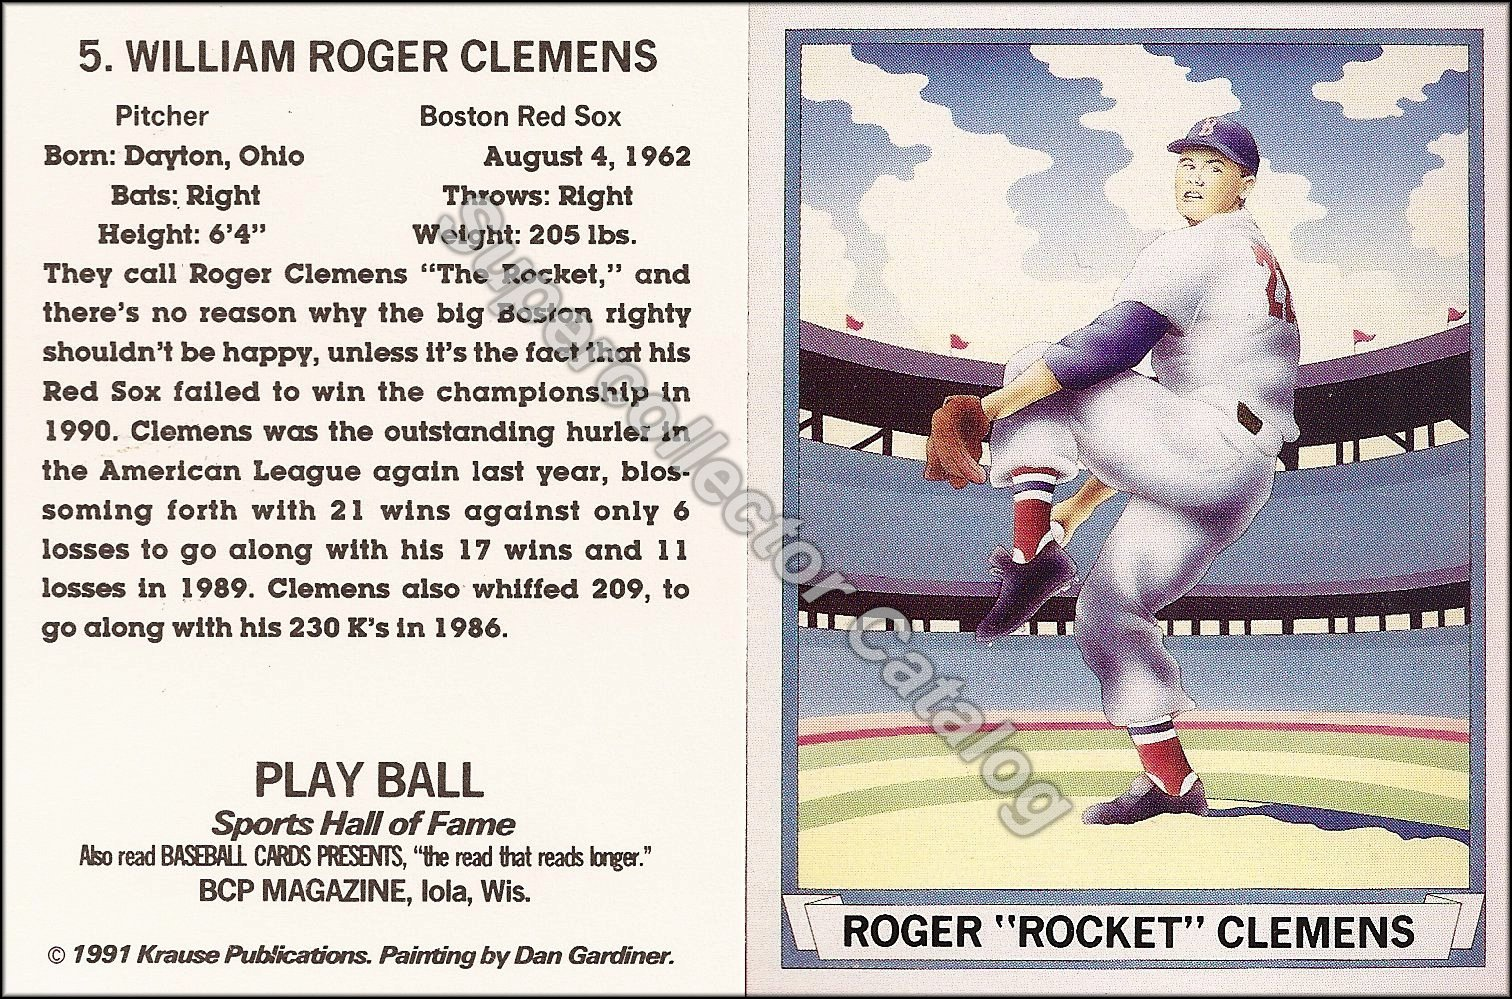 1991 Baseball Cards Presents 'Investors Guide to BB Cards' ('41 Playball)